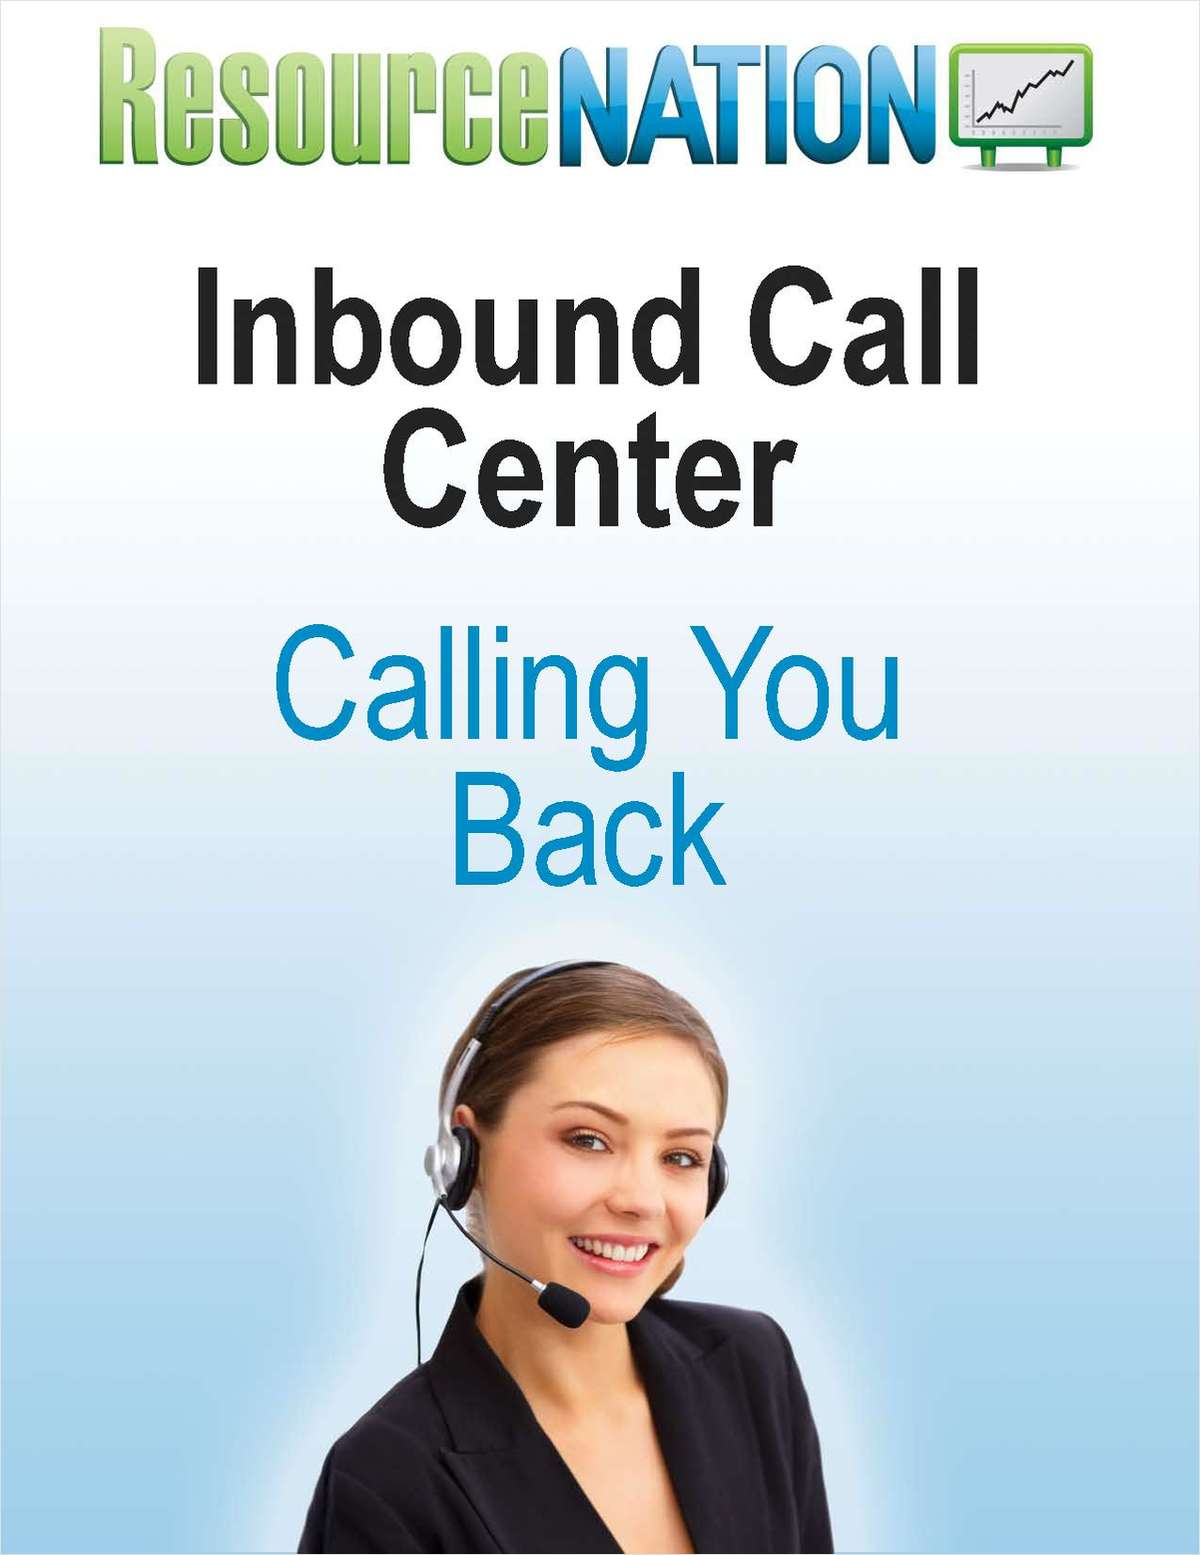 Call Centers Are The Right Call For Any Size Business